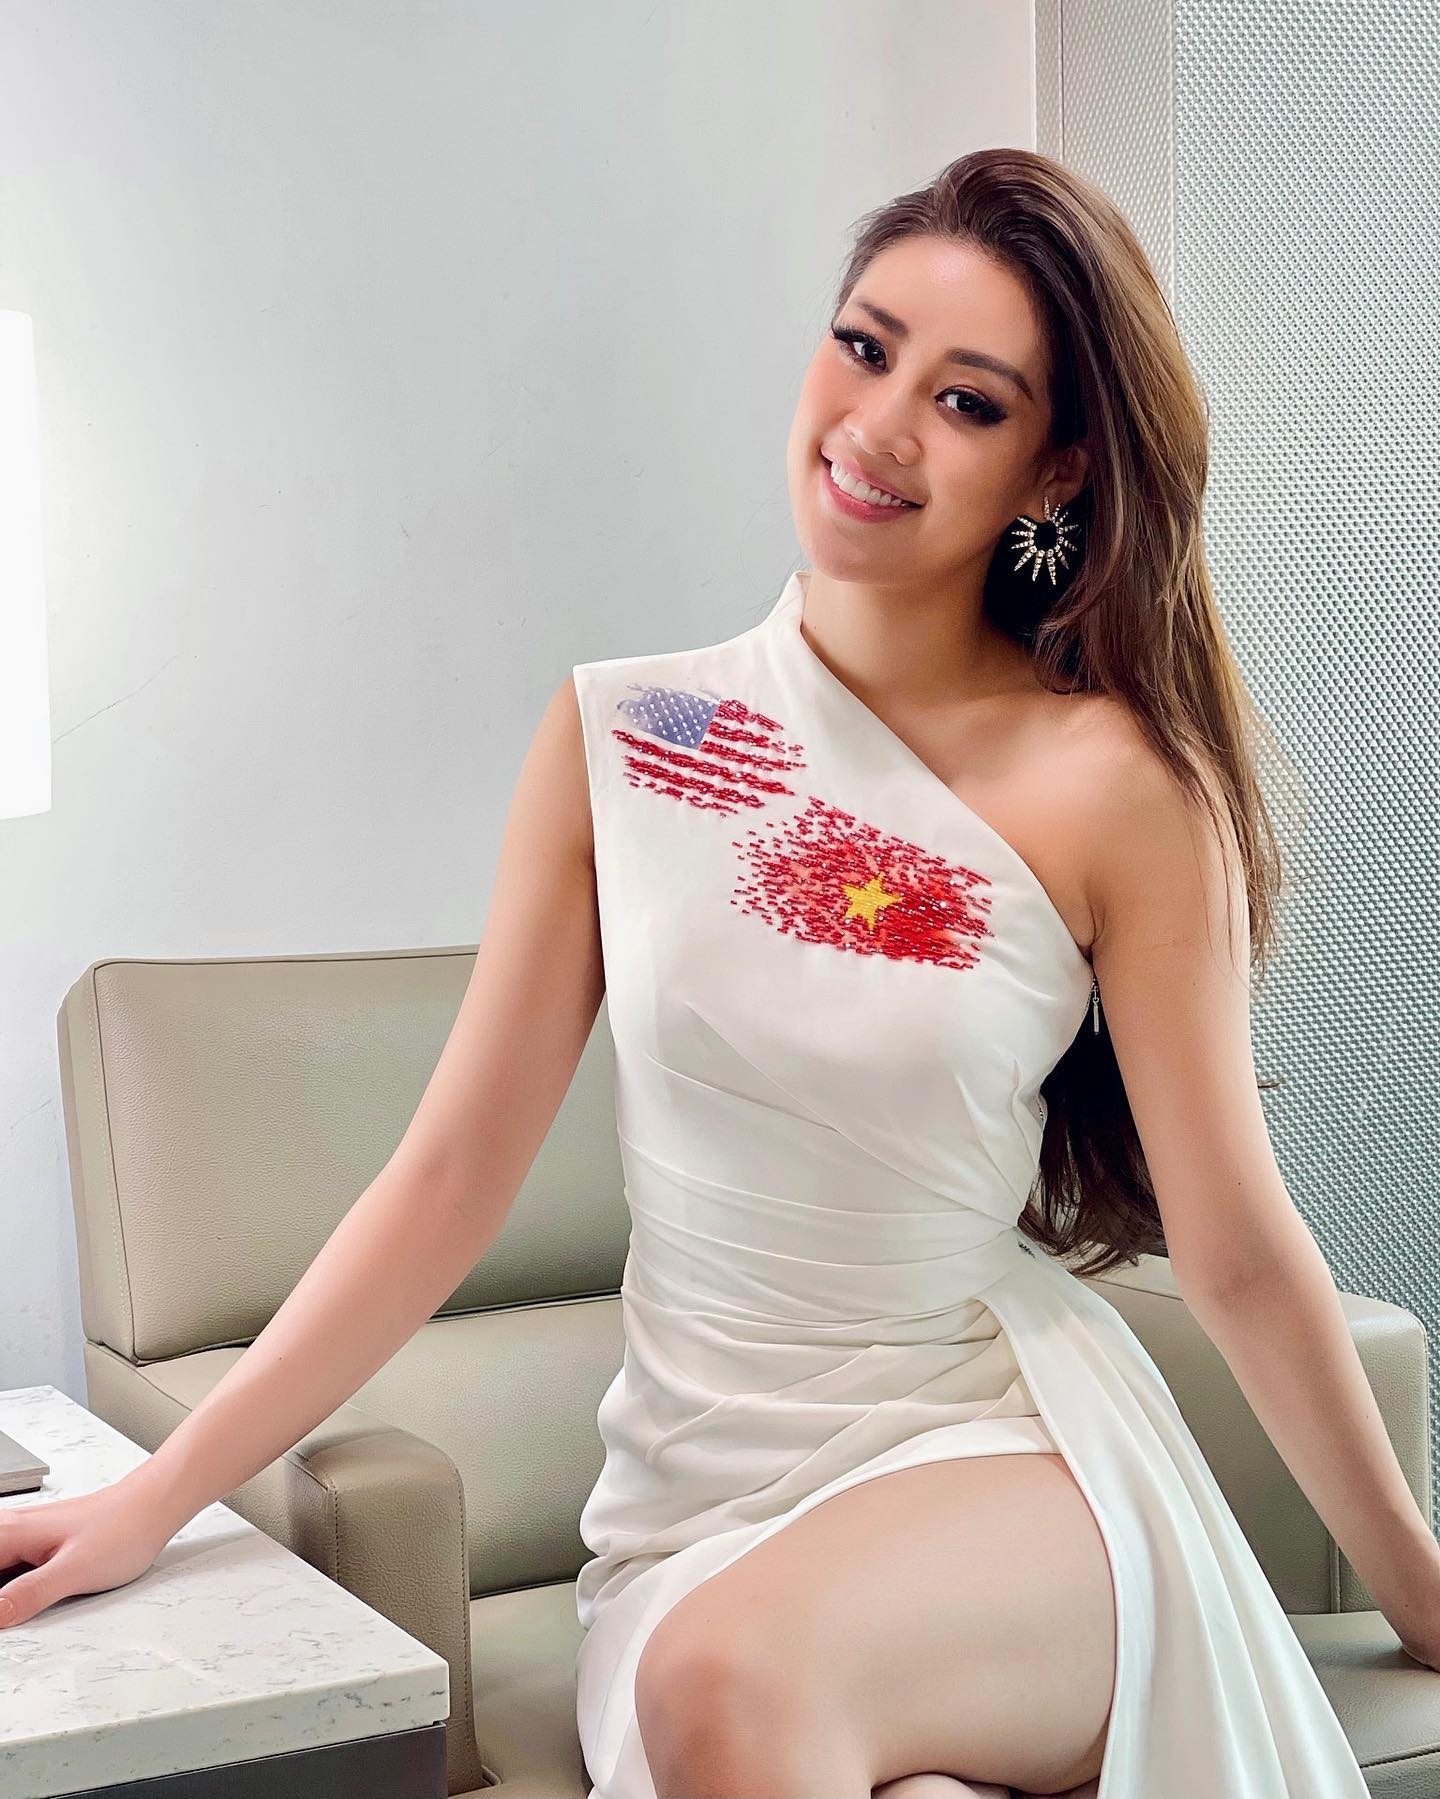 A photo shows Nguyen Tran Khanh Van in a dress celebrating the national flags of Vietnam and the U.S at Miss Universe 2020. Photo: Instagram @khanhvannguyen25